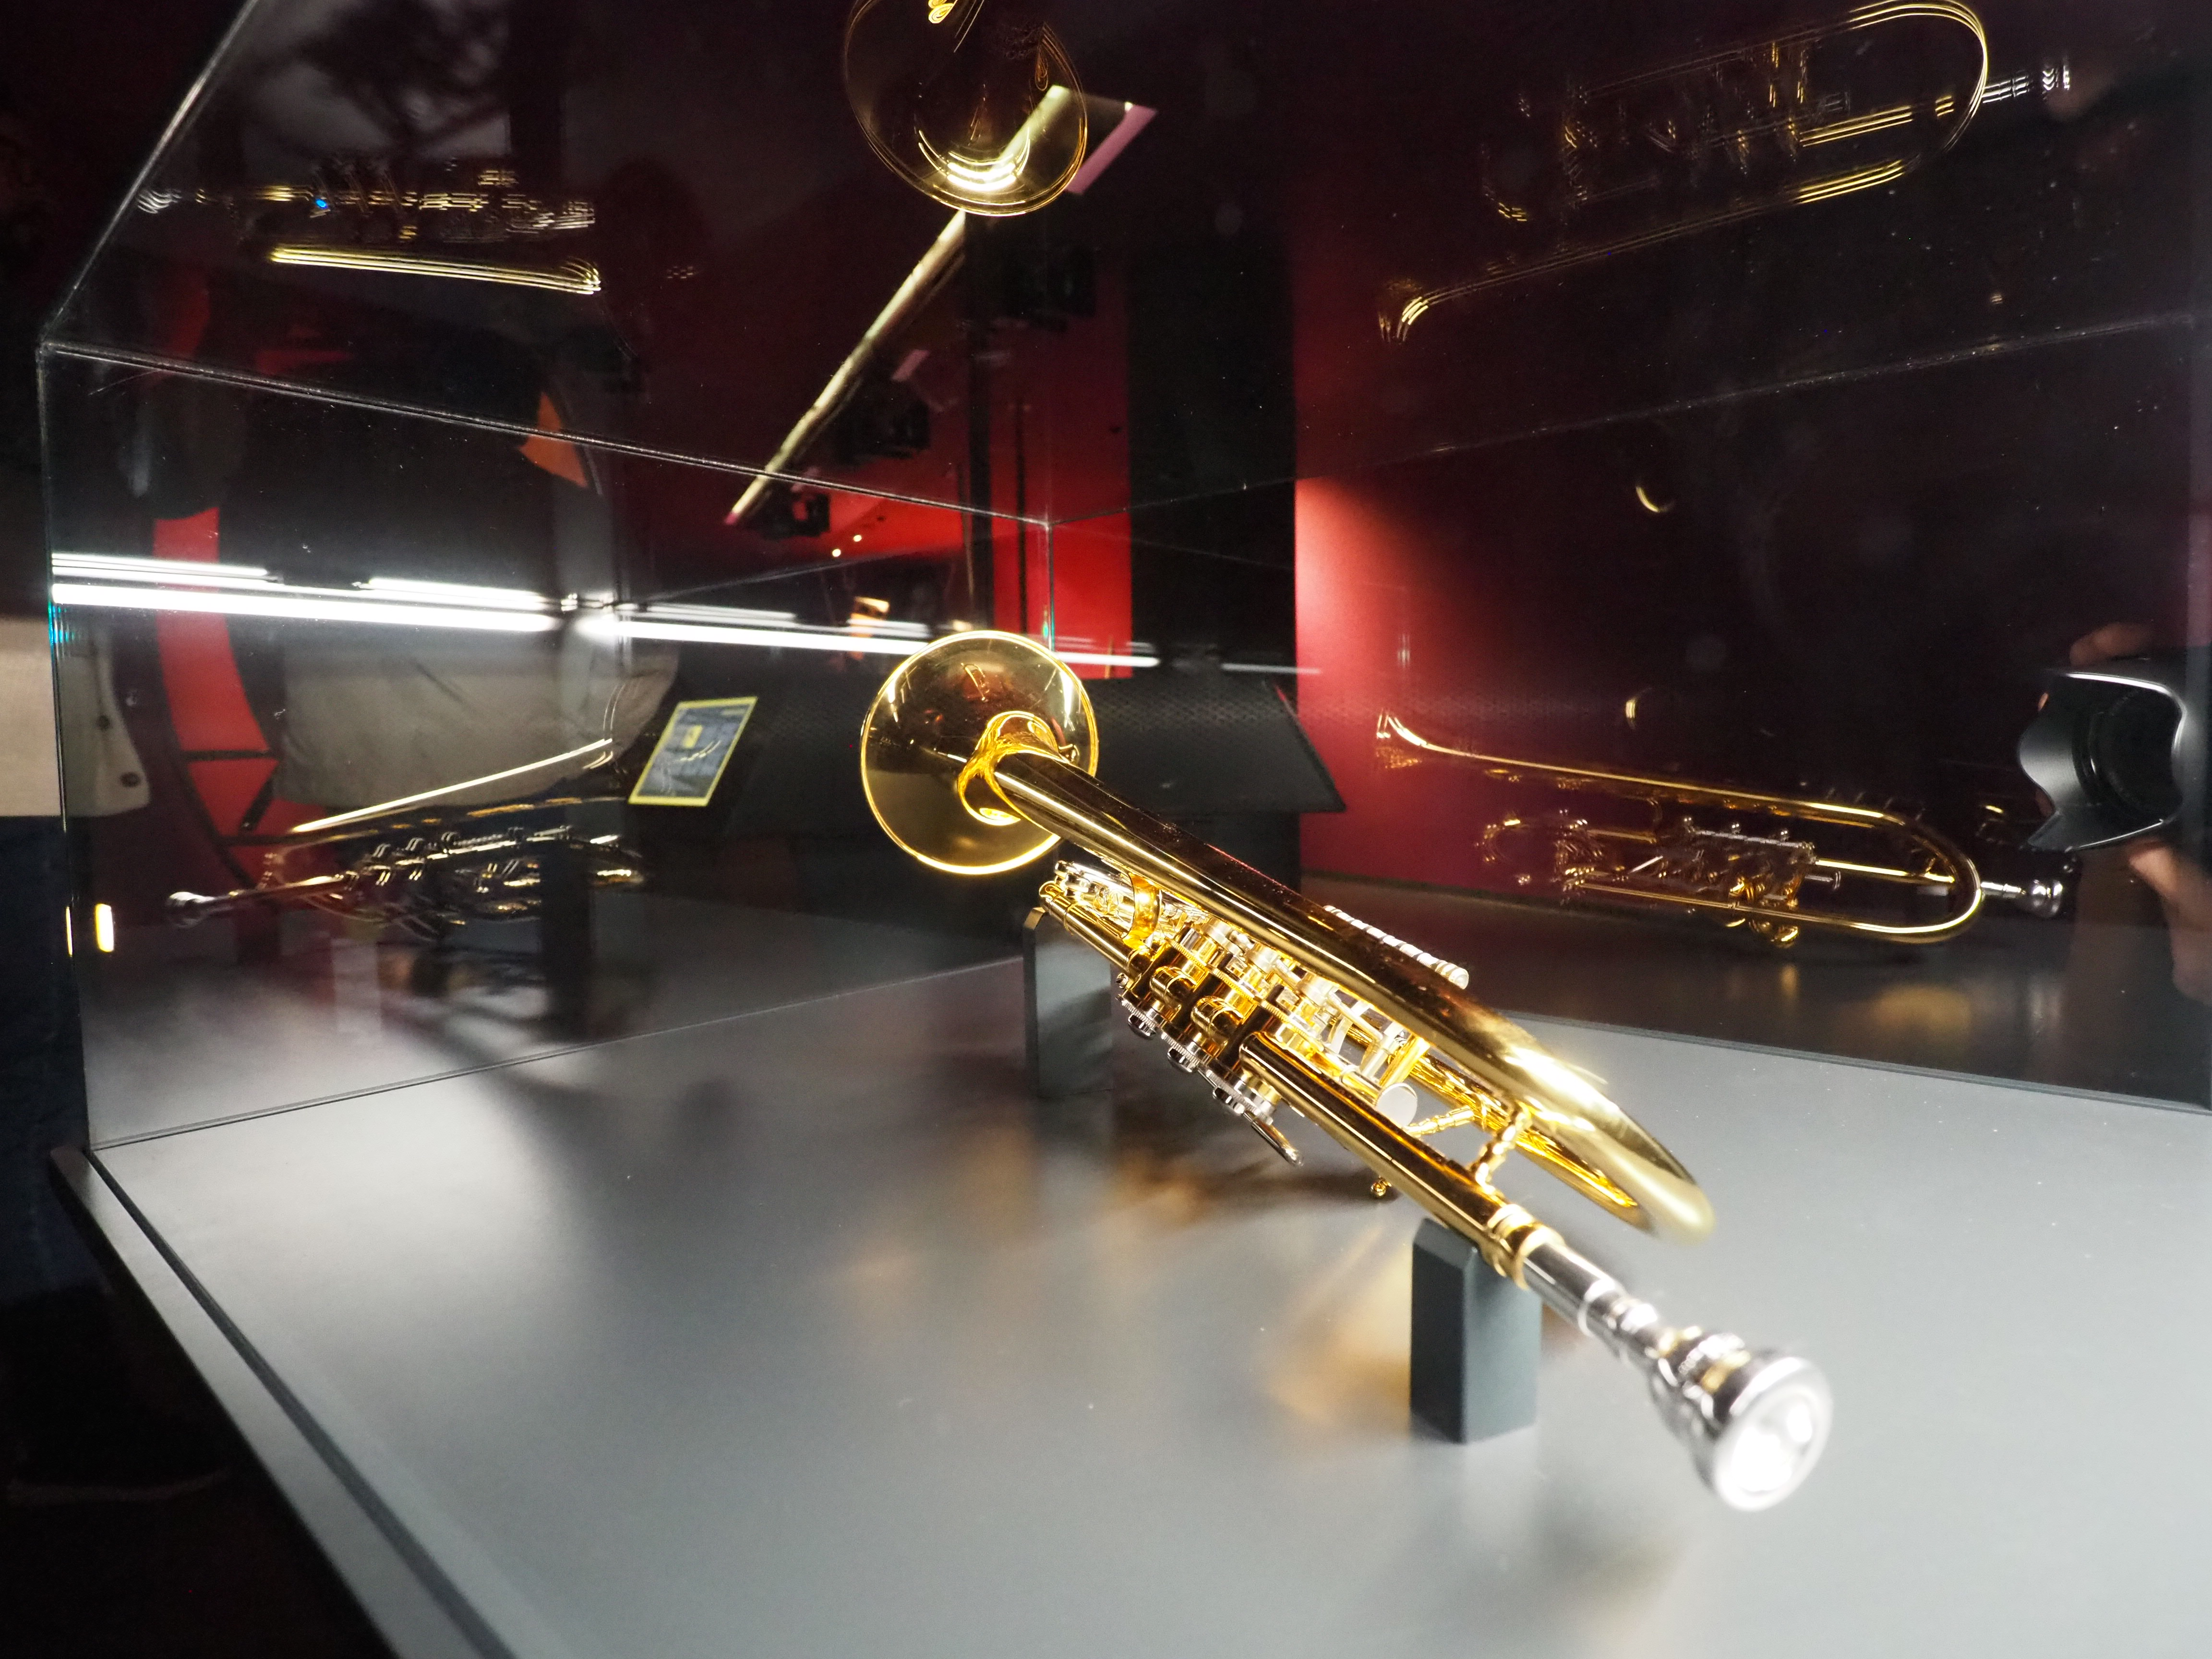 Haus der Musik – Vienna: City of Music